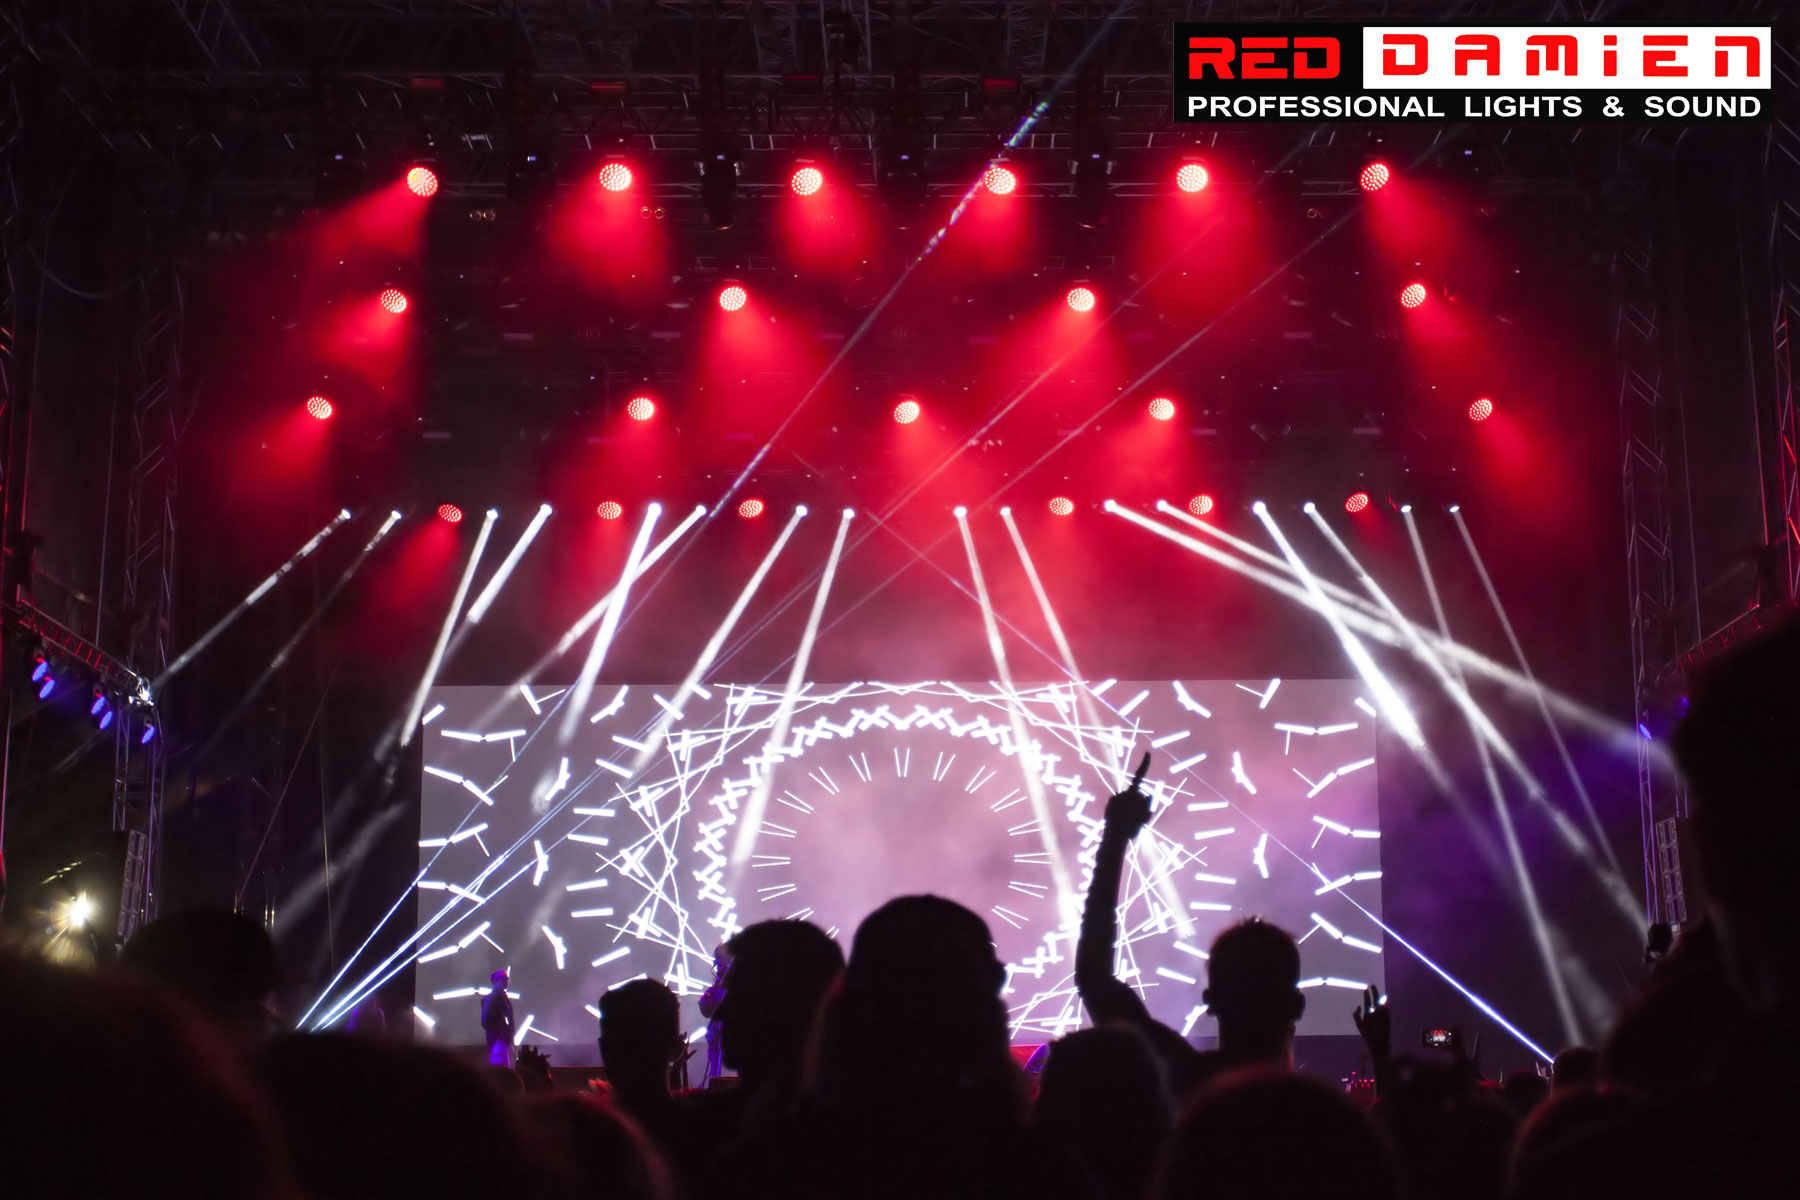 Led wall as a stage backdrop red damien professional lights led wall as a stage backdrop aloadofball Gallery